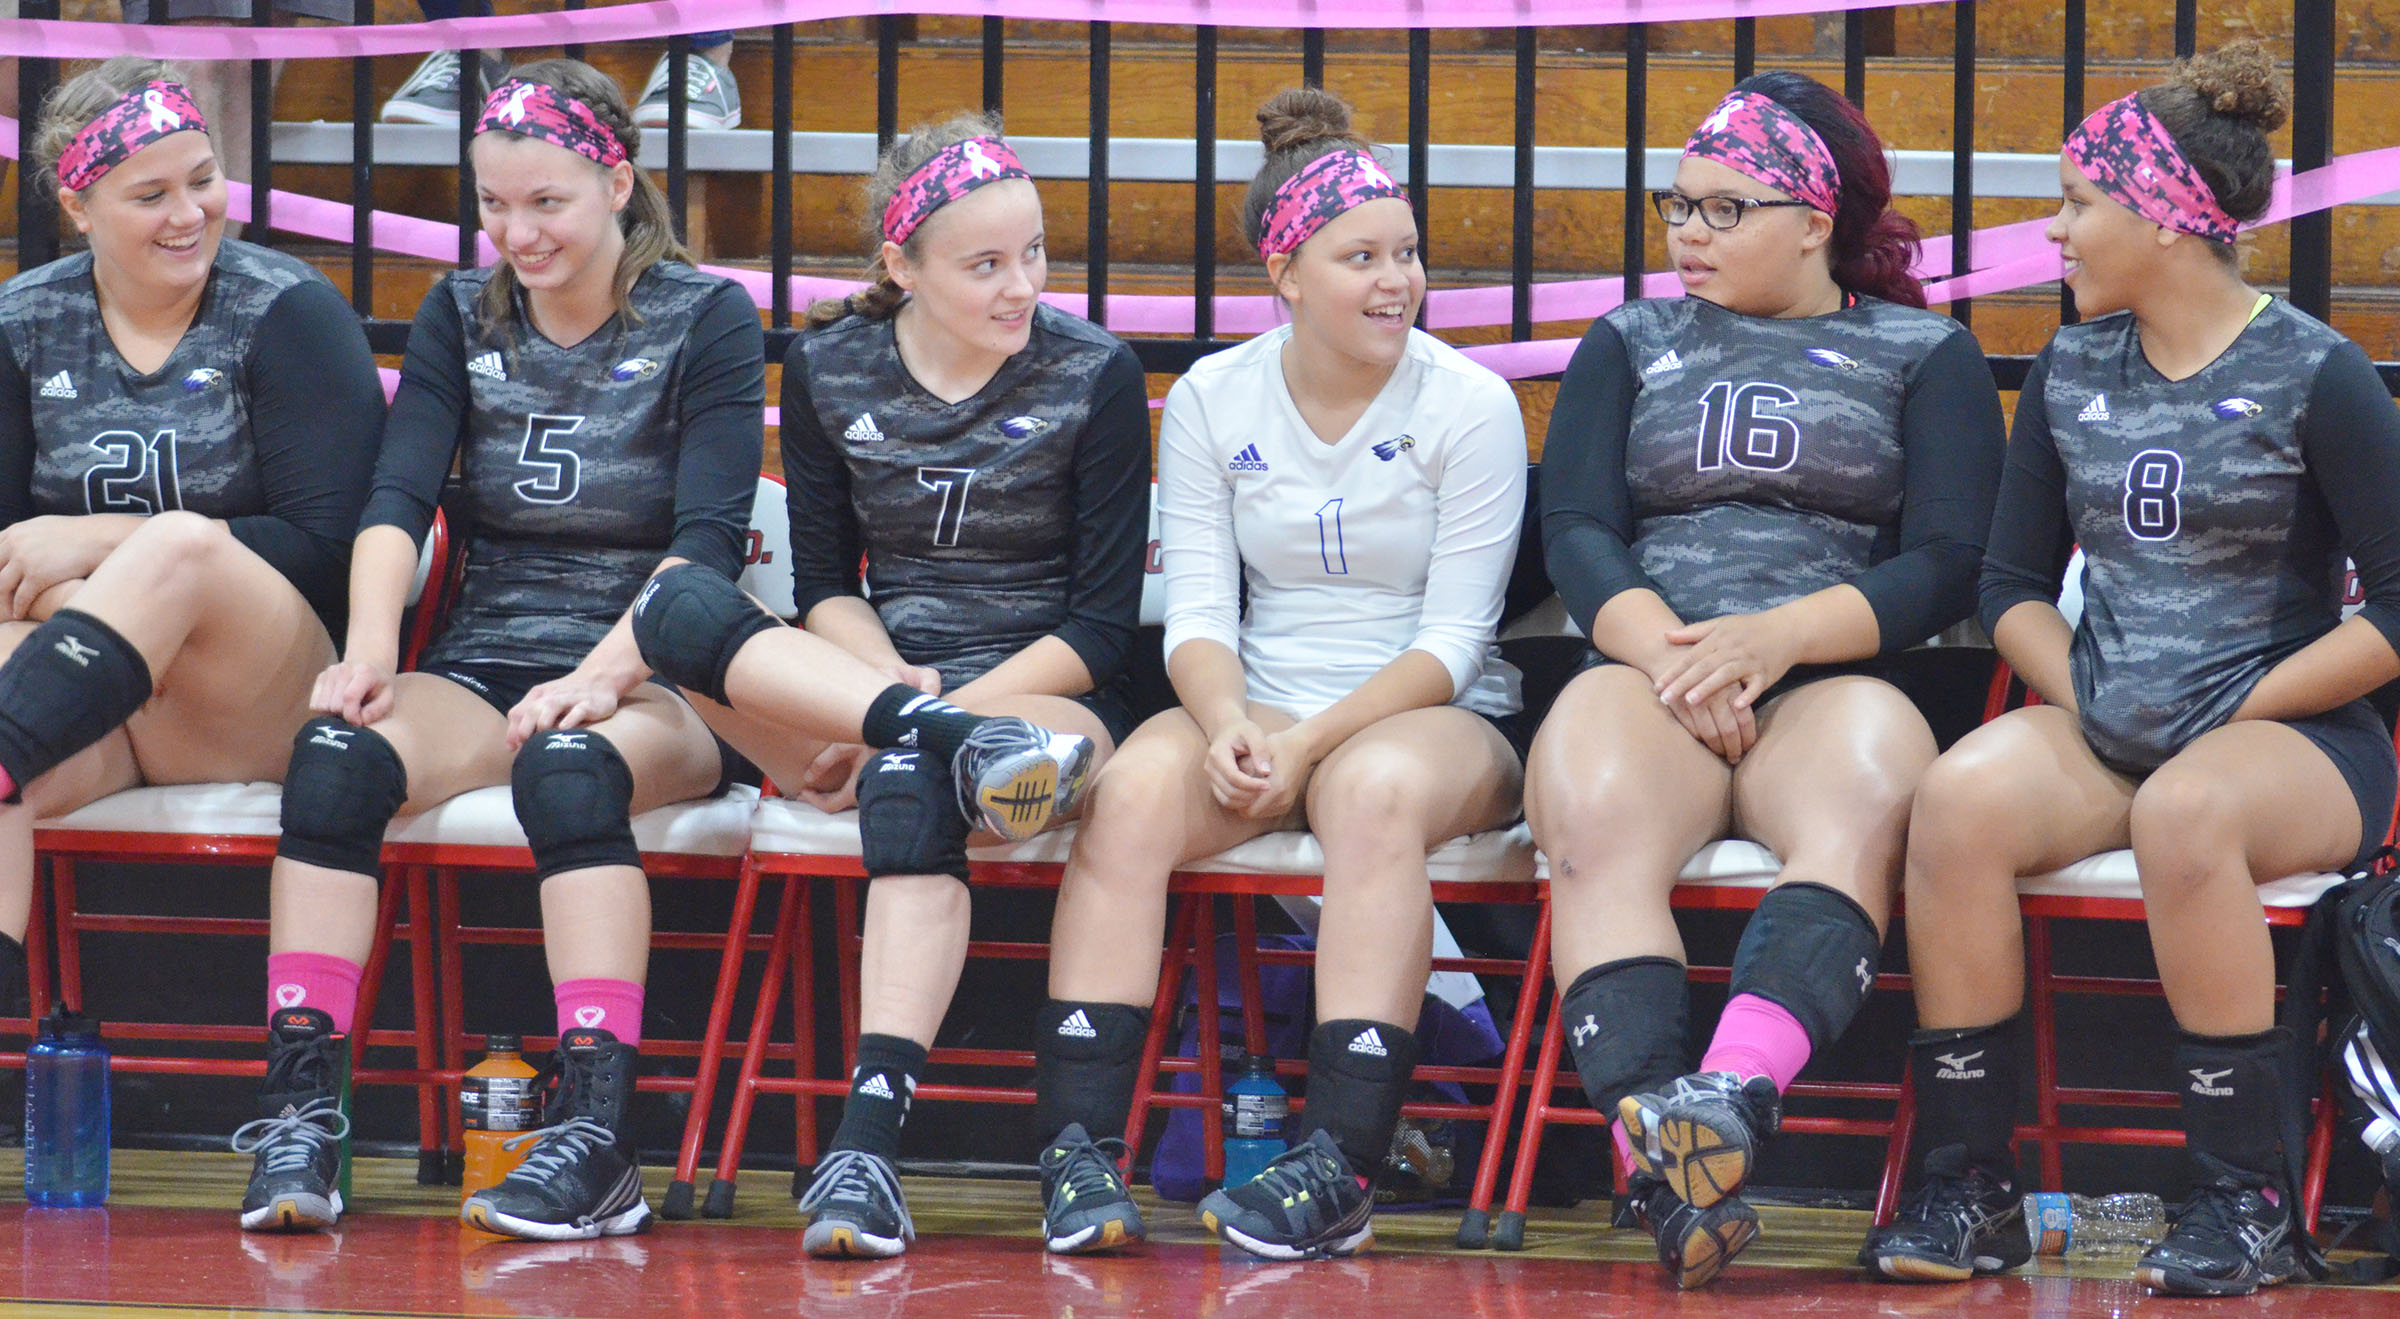 CHS senior volleyball players talk before the game begins. From left are Brenna Wethington, Caylie Blair, Caroline McMahan, Breanna Spaulding, Deovion Owens and Diamond Thompson.